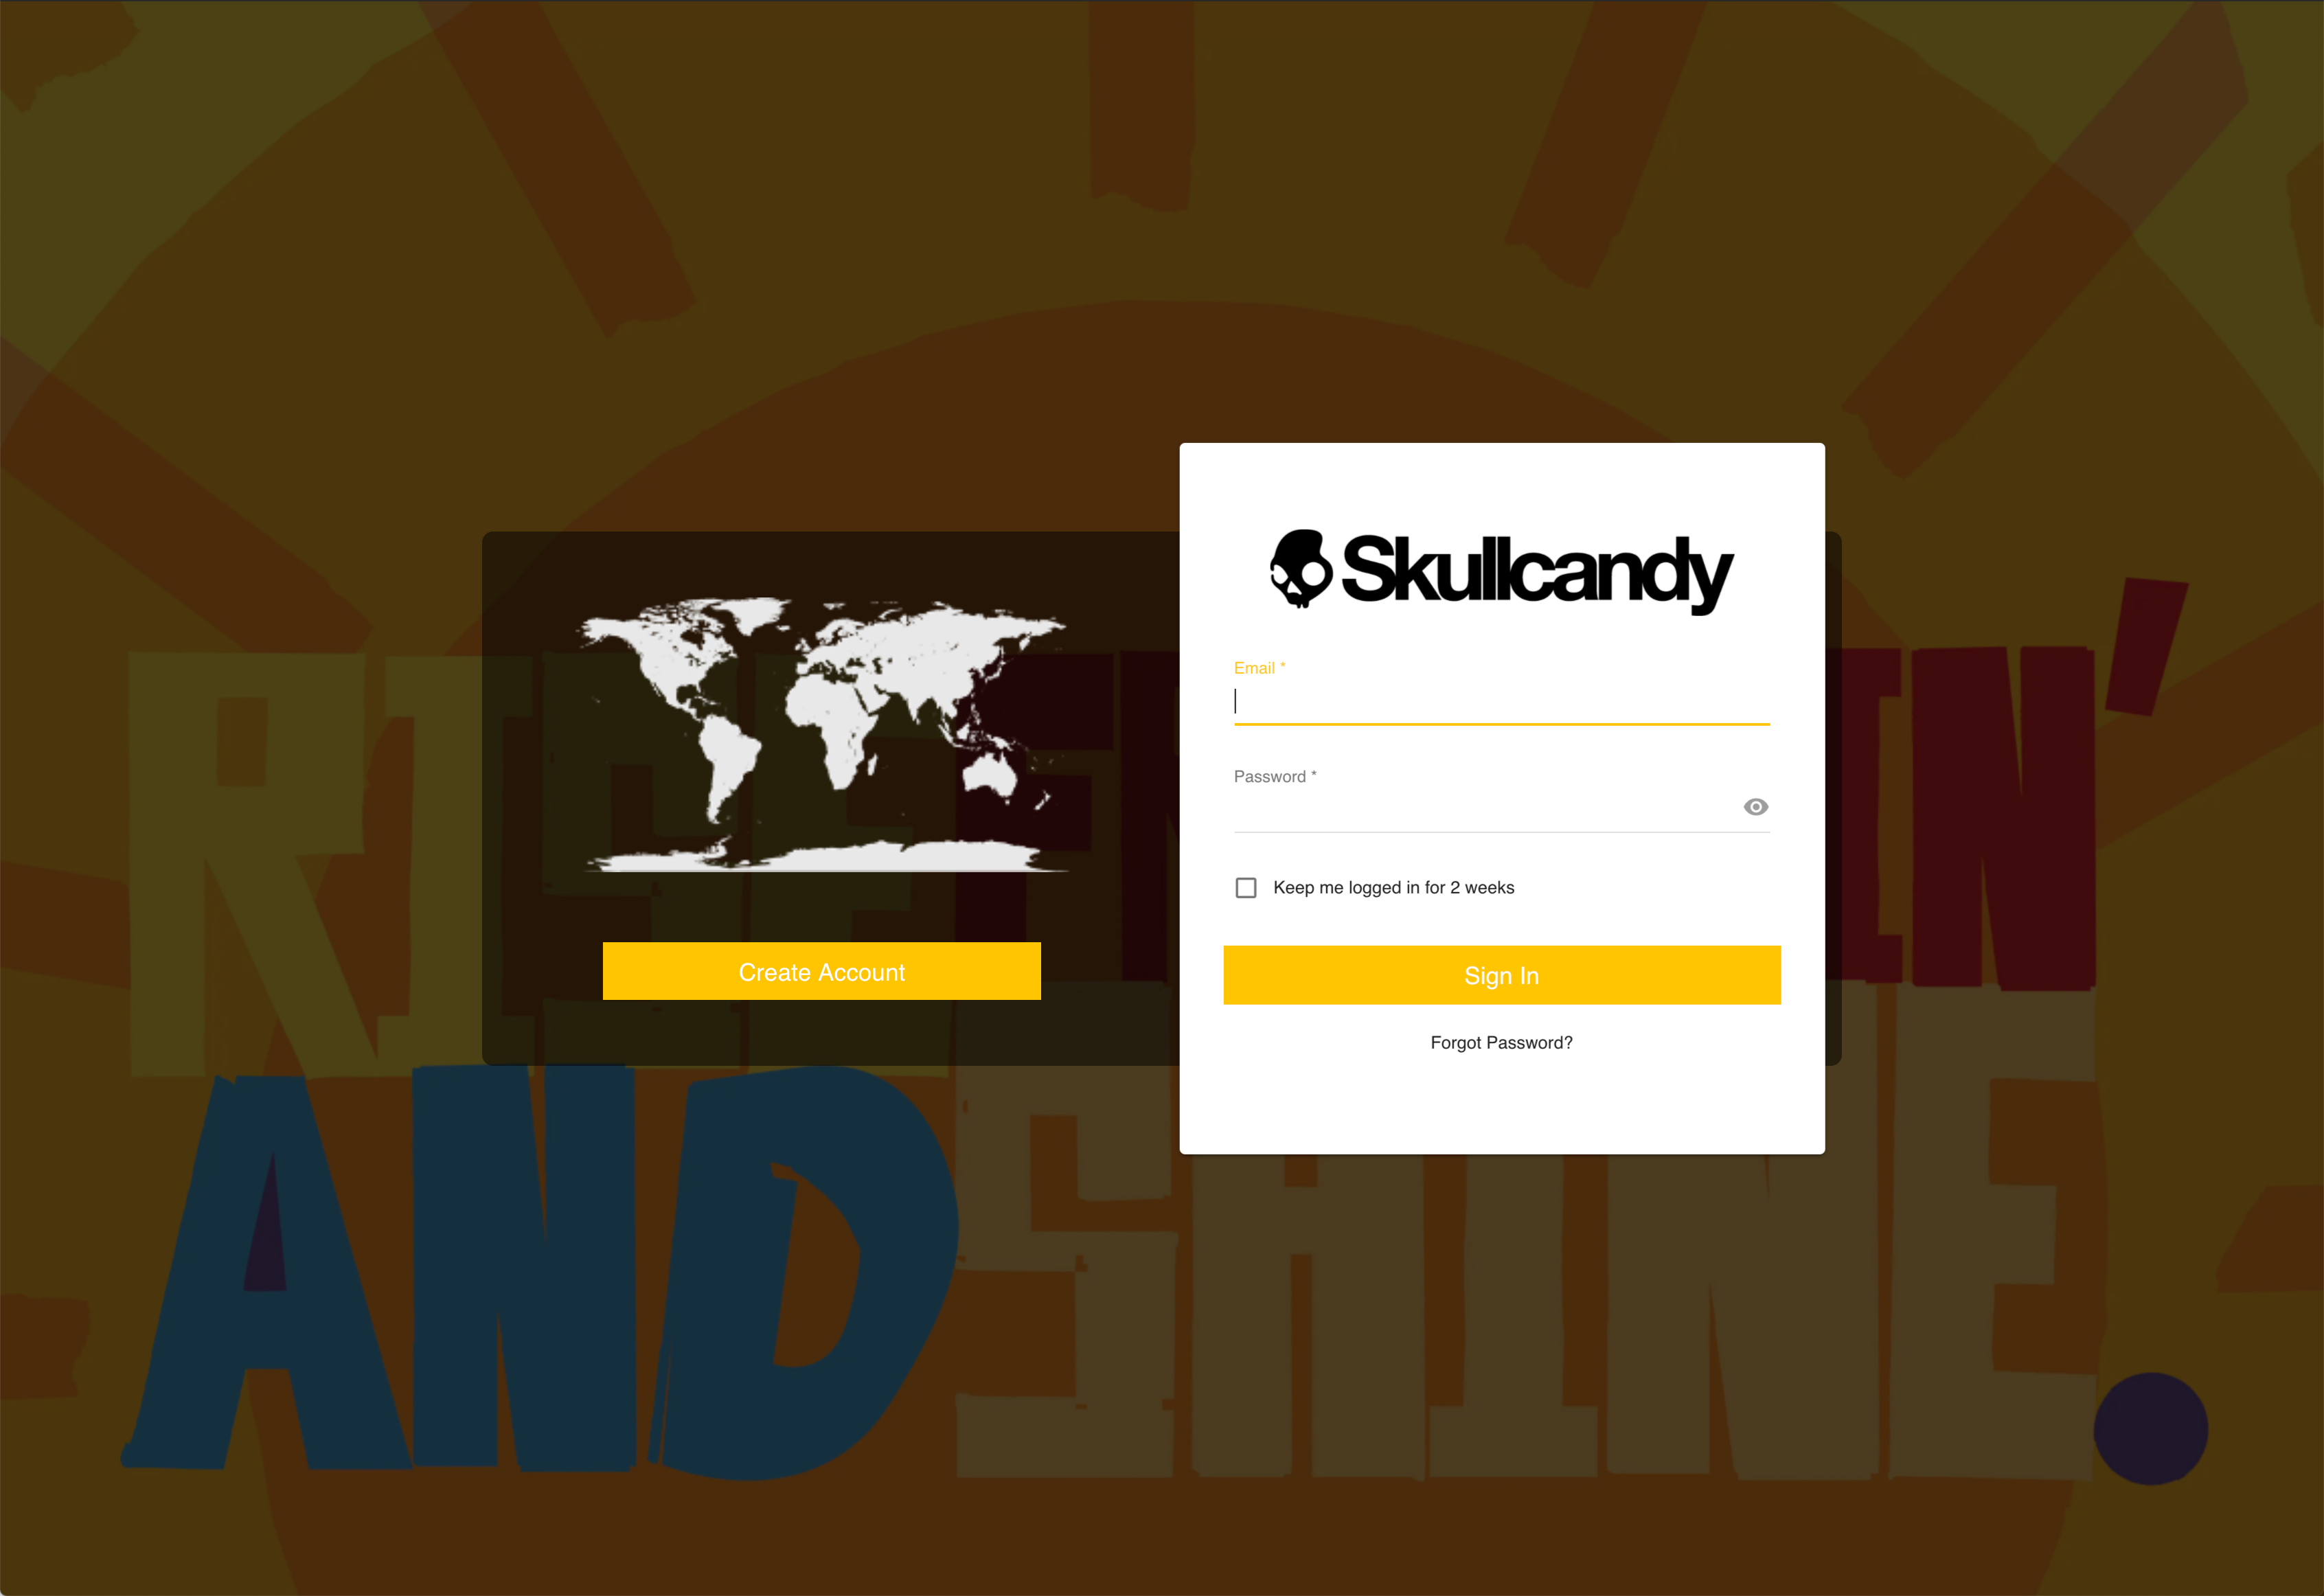 Amplifi.io screenshot: #1 - Hi. Please step through these images for a quick visual demo of our system using Skullcandy brand as our sample. We hope you enjoy!   #1 Login Page - Can use SSO from an existing company system or other B2B portal if needed.